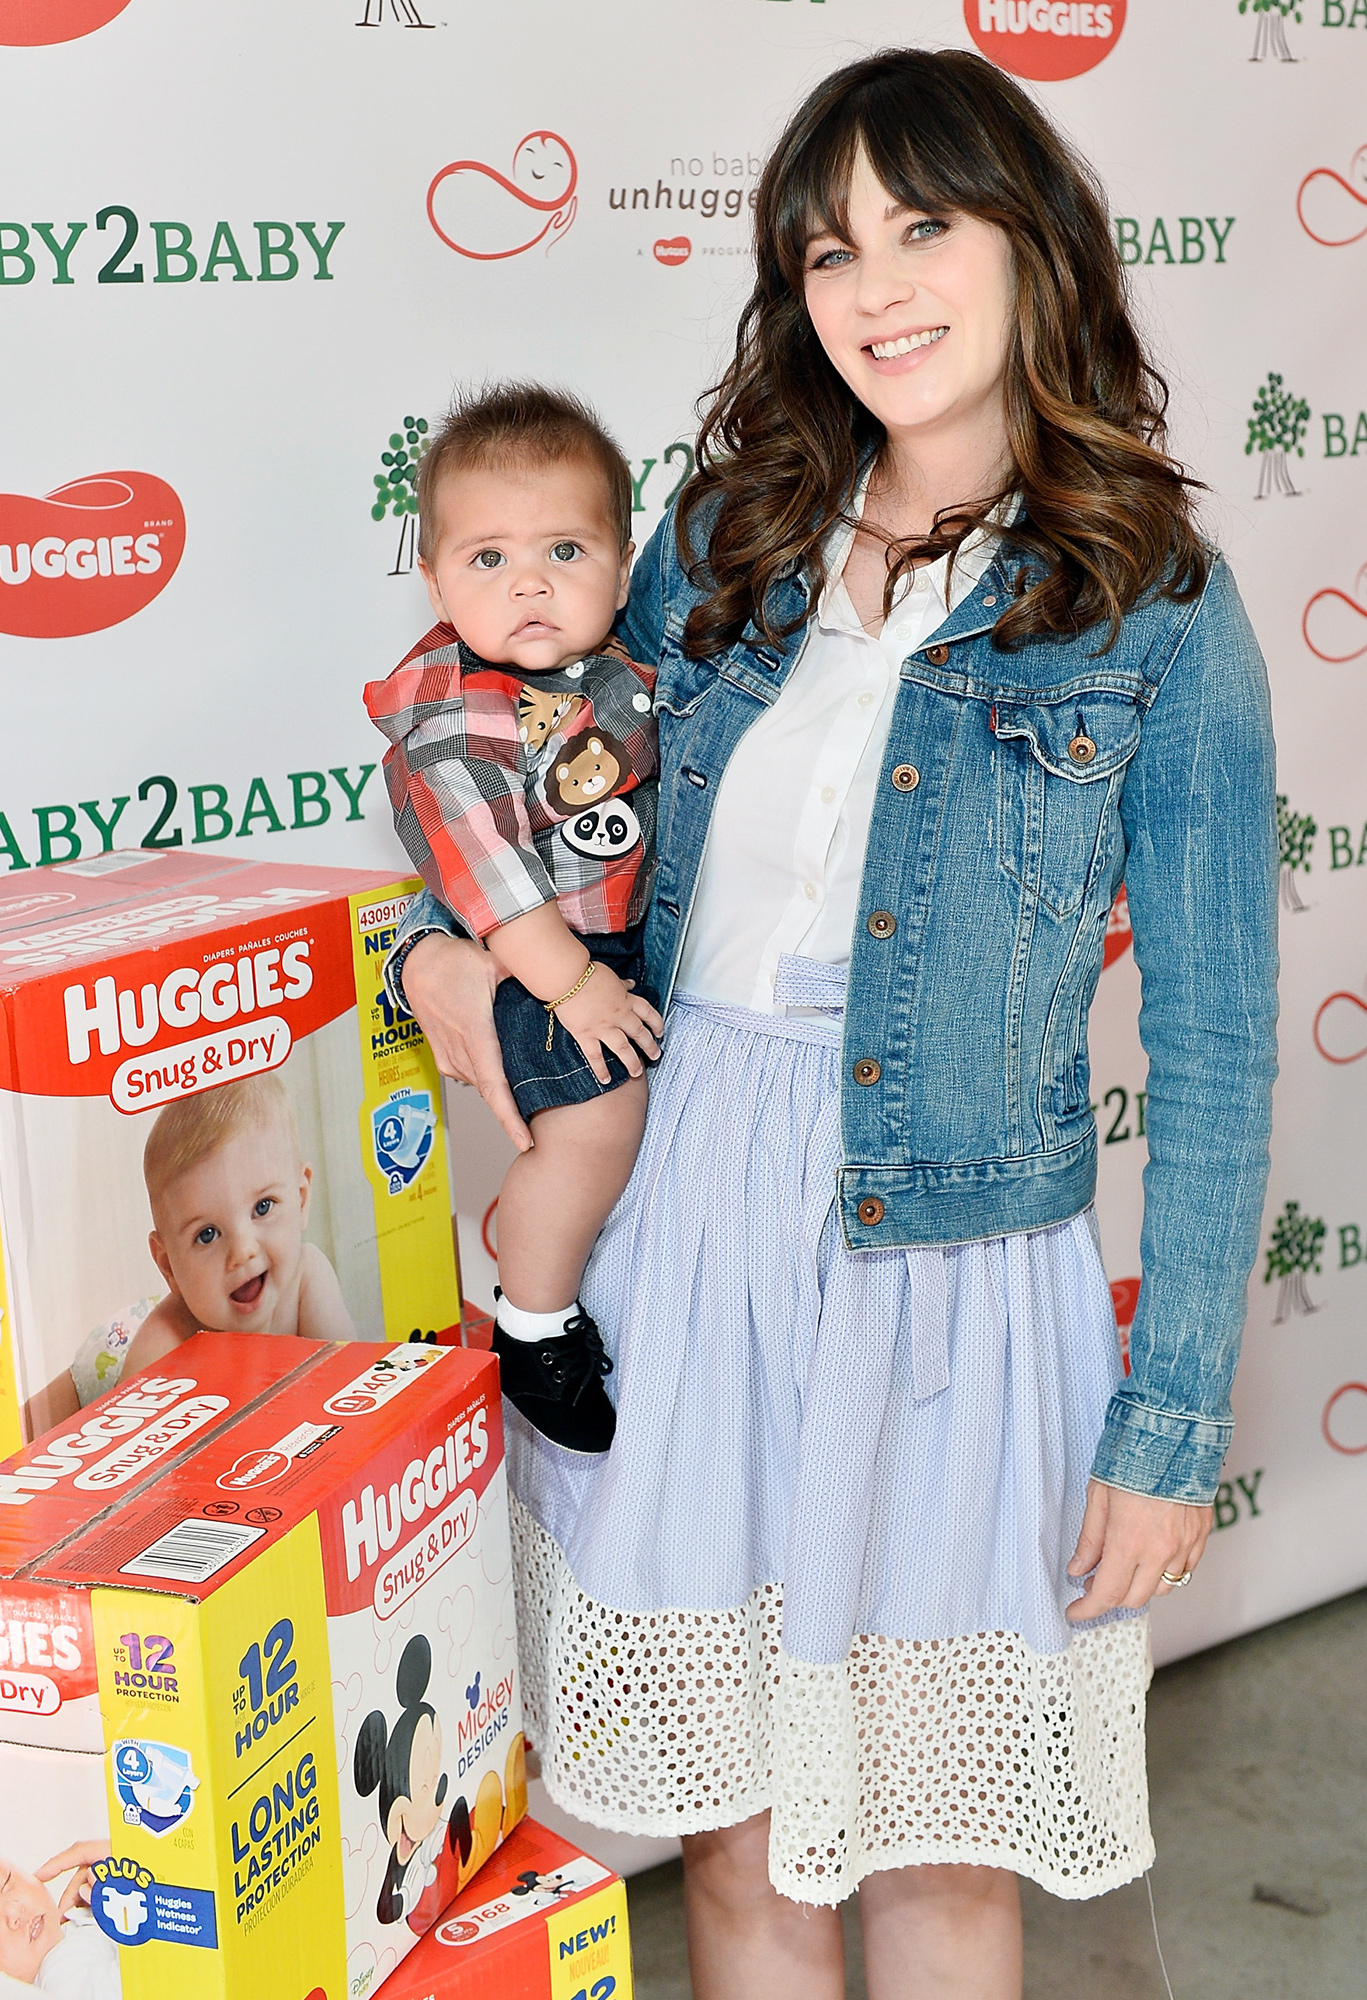 Zooey Deschanel Says Her Kids Are Her Absolute No. 1